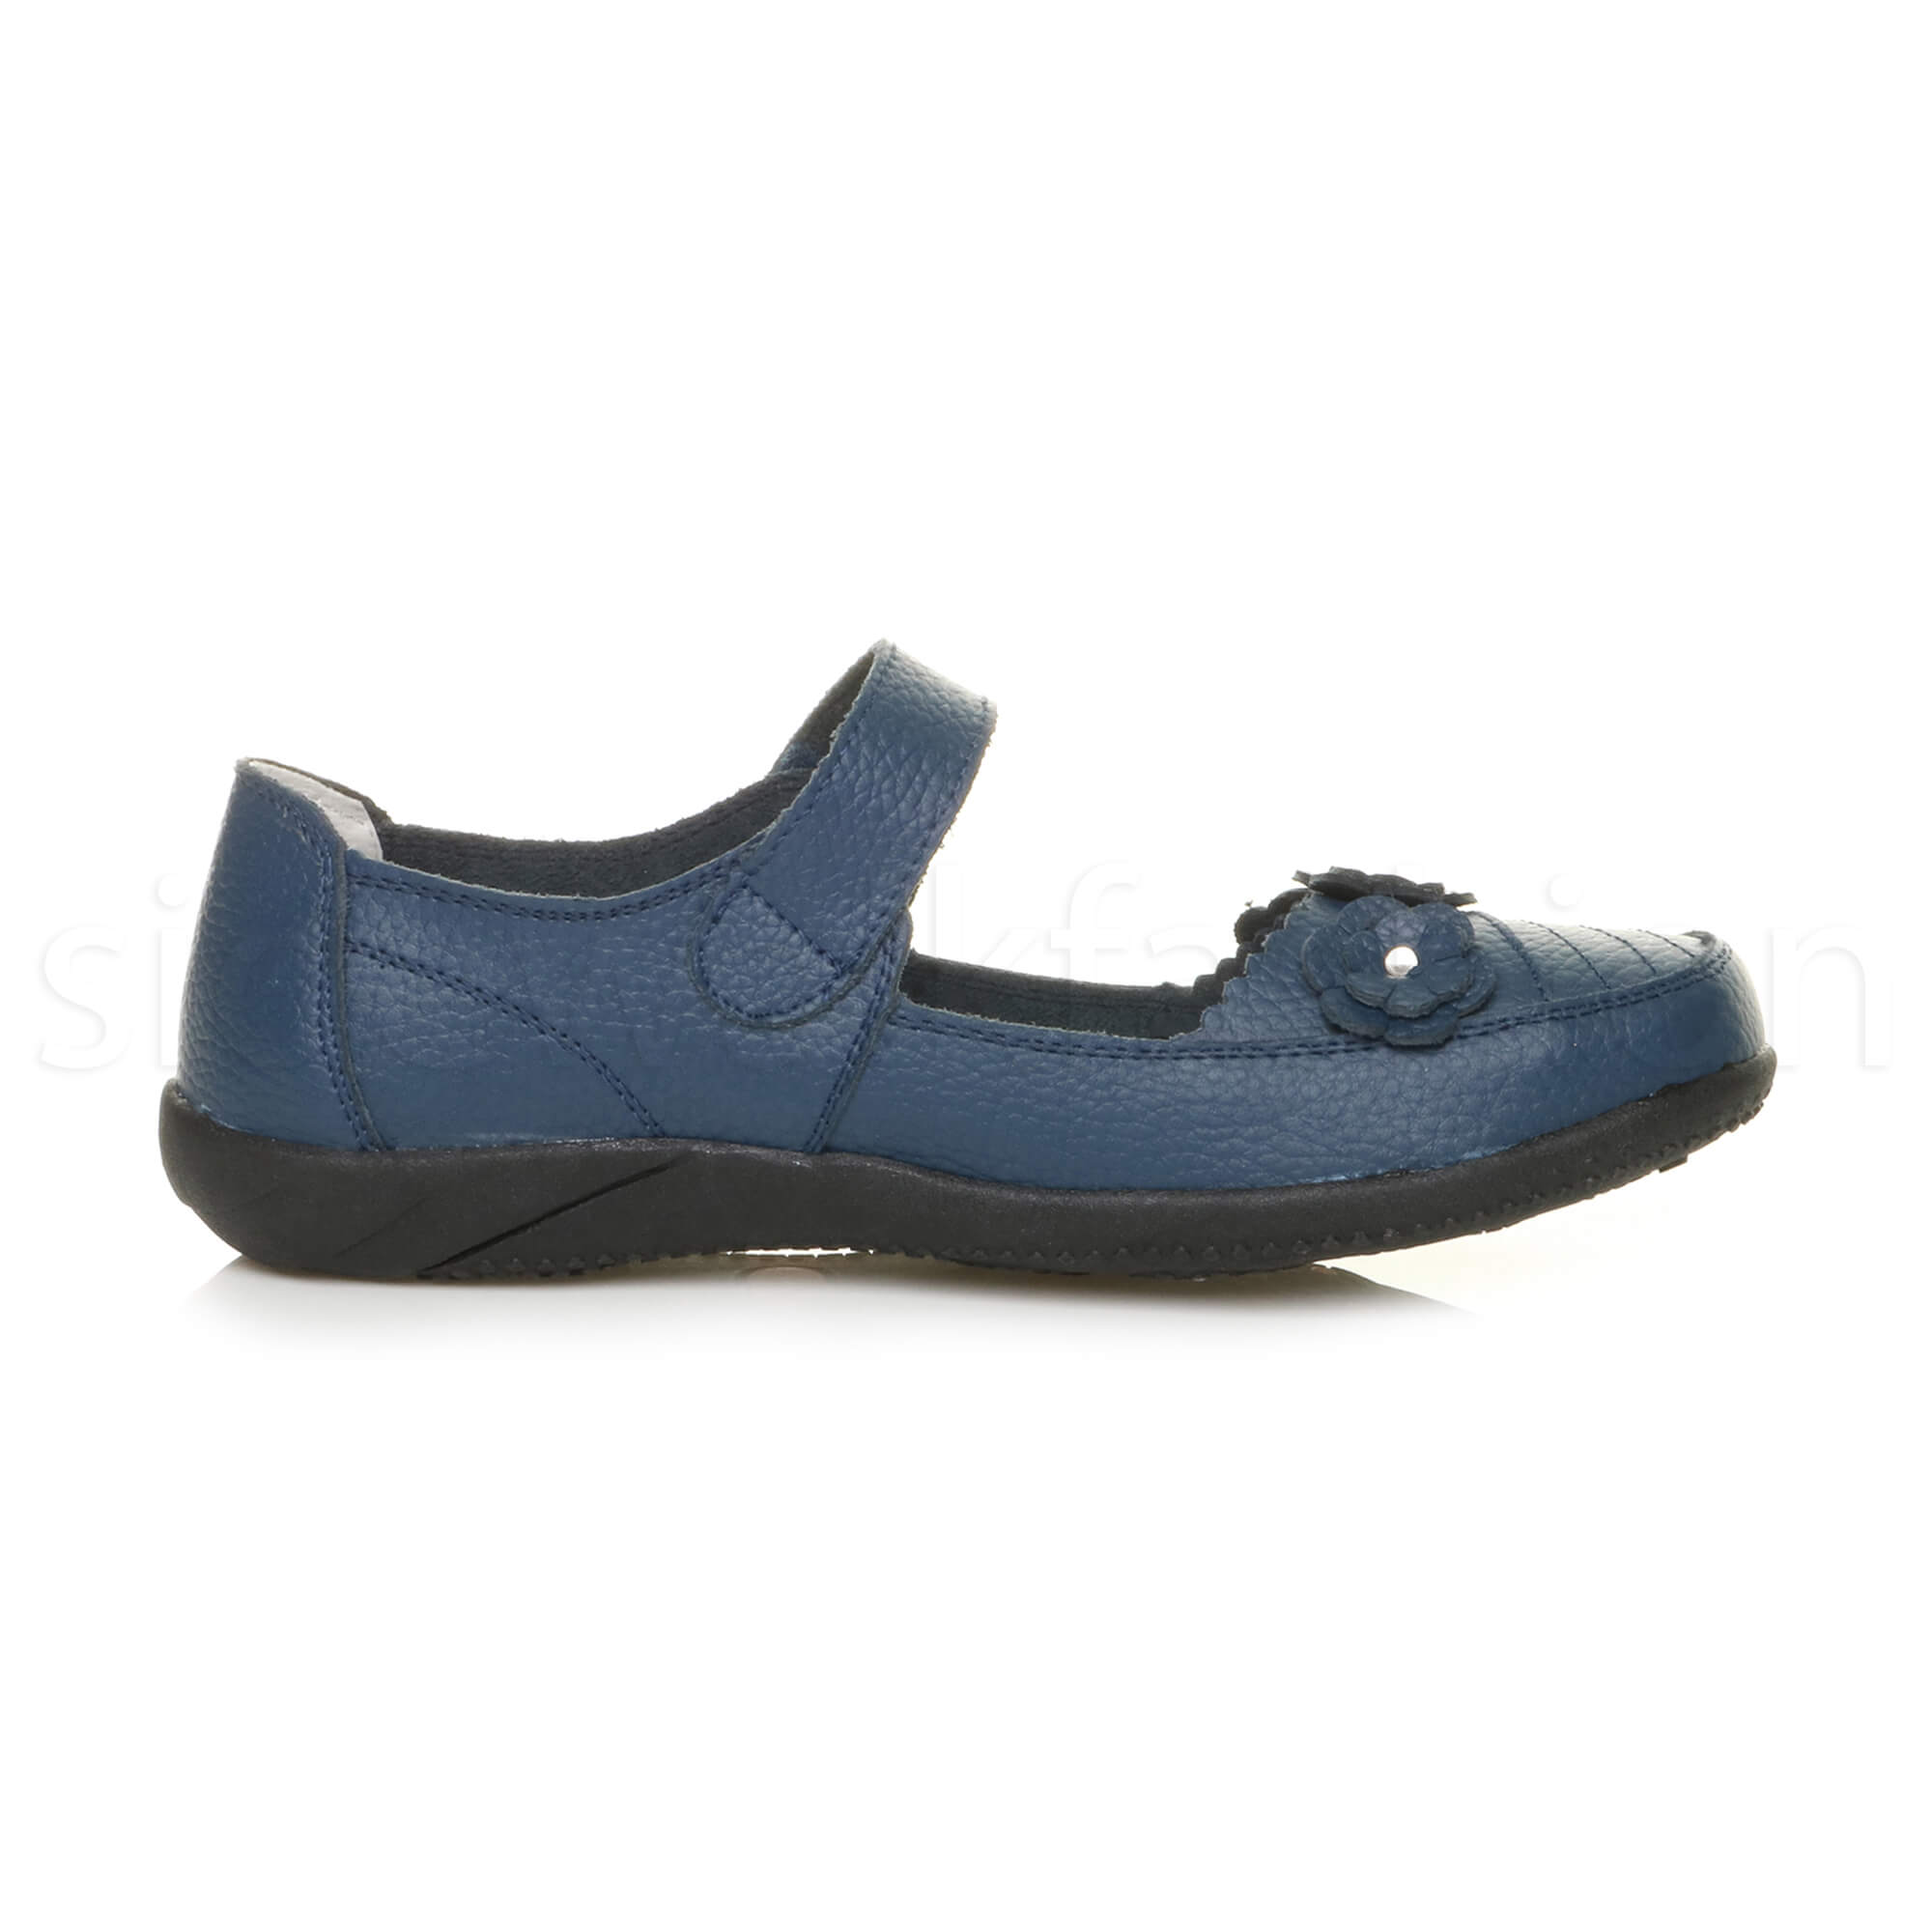 Womens-ladies-leather-comfort-walking-casual-sandals-mary-jane-strap-shoes-size thumbnail 34